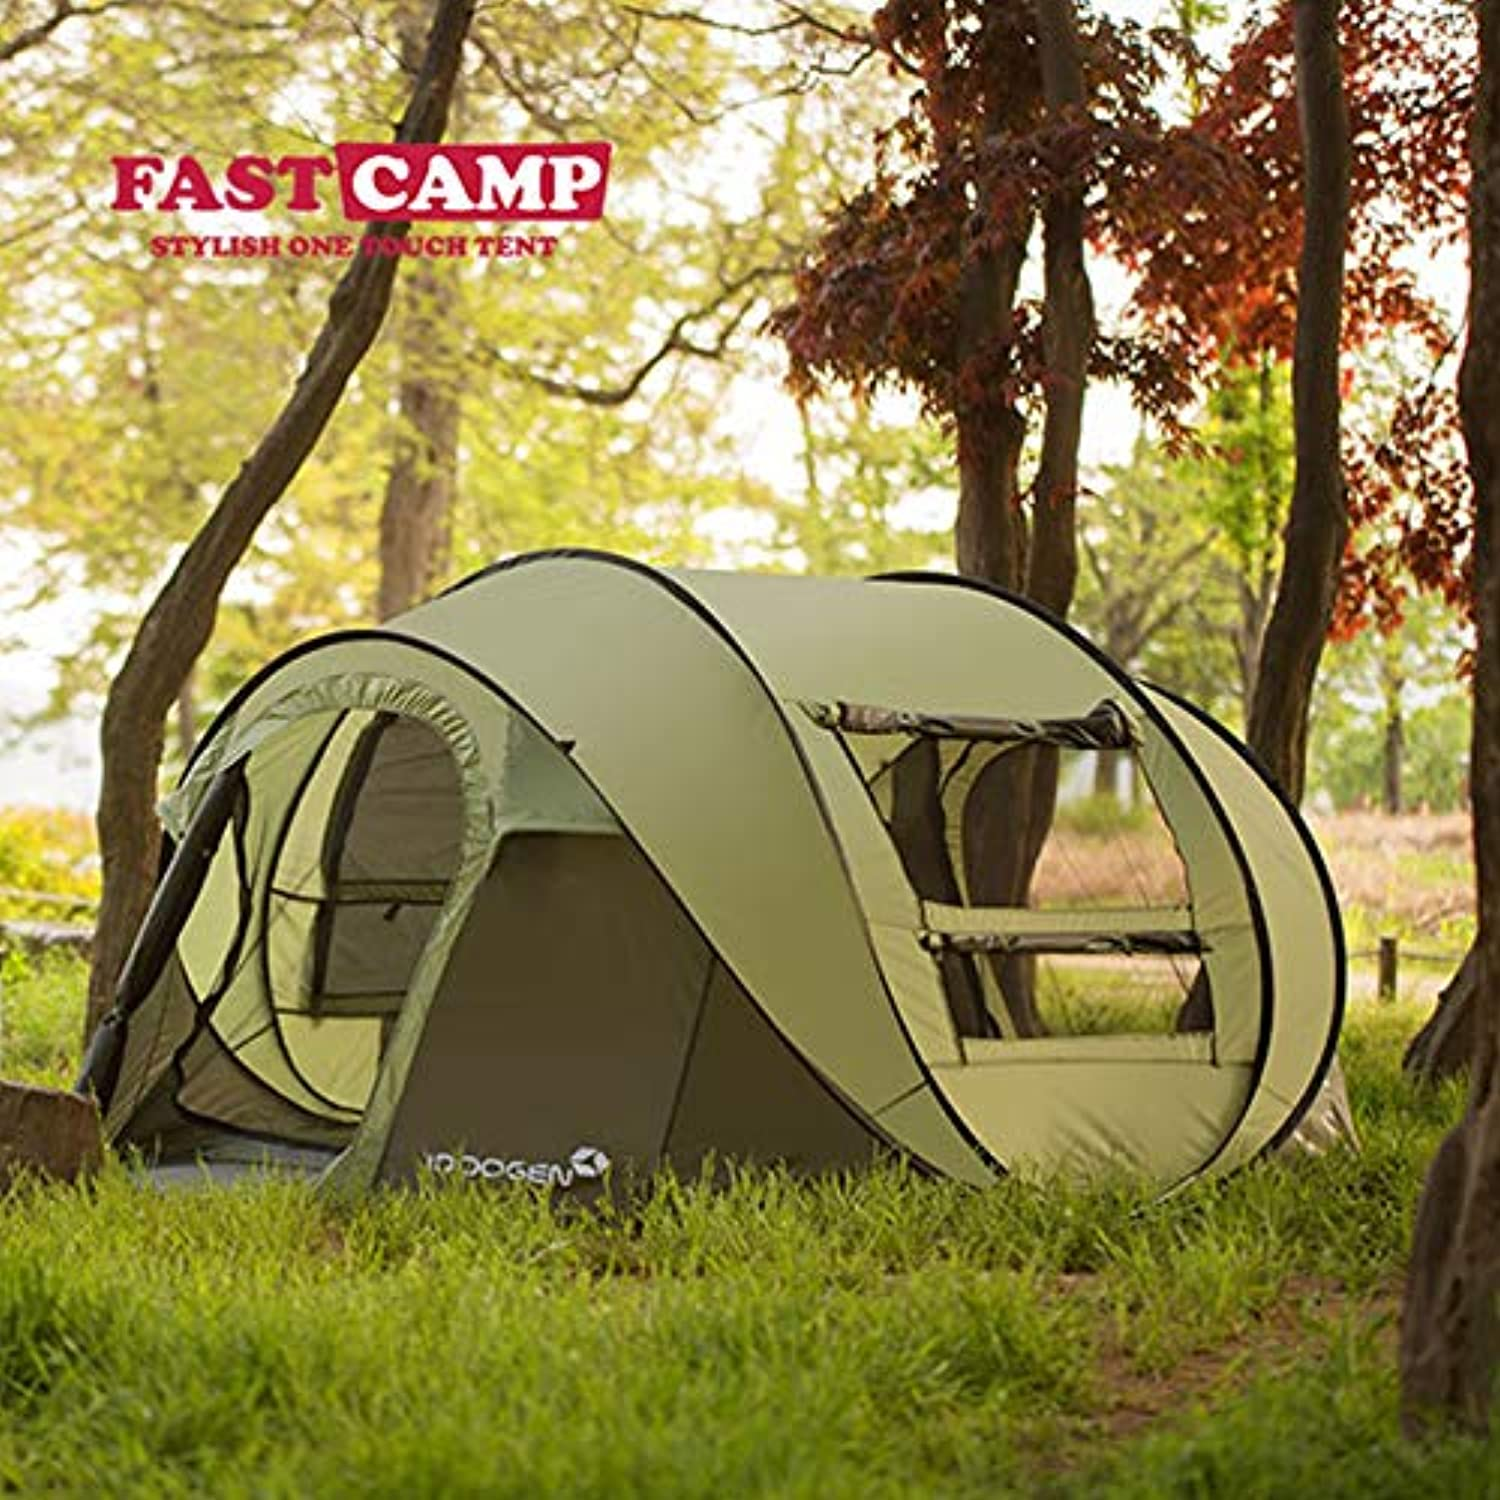 FASTCAMP Large Canopy Tent [People] Users Outside Weatherproof Tent Camping Camping Park Set up Free Exposure